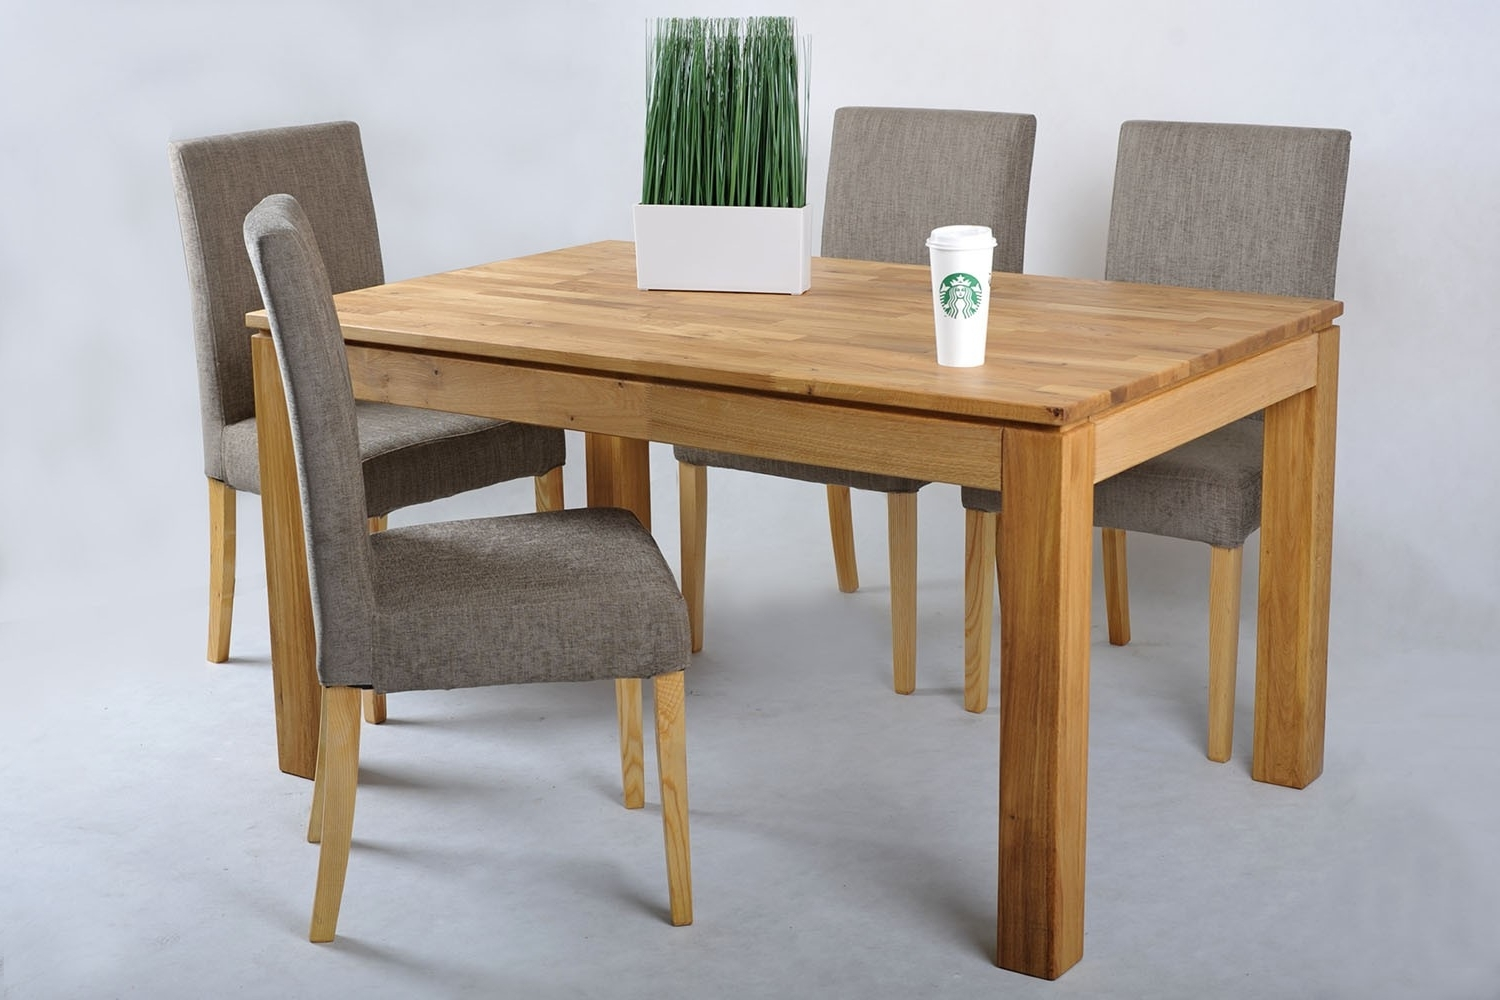 Oak Fabric Dining Chairs Regarding 2017 Oak Extending Dining Table And Fabric Chairs Set (View 21 of 25)